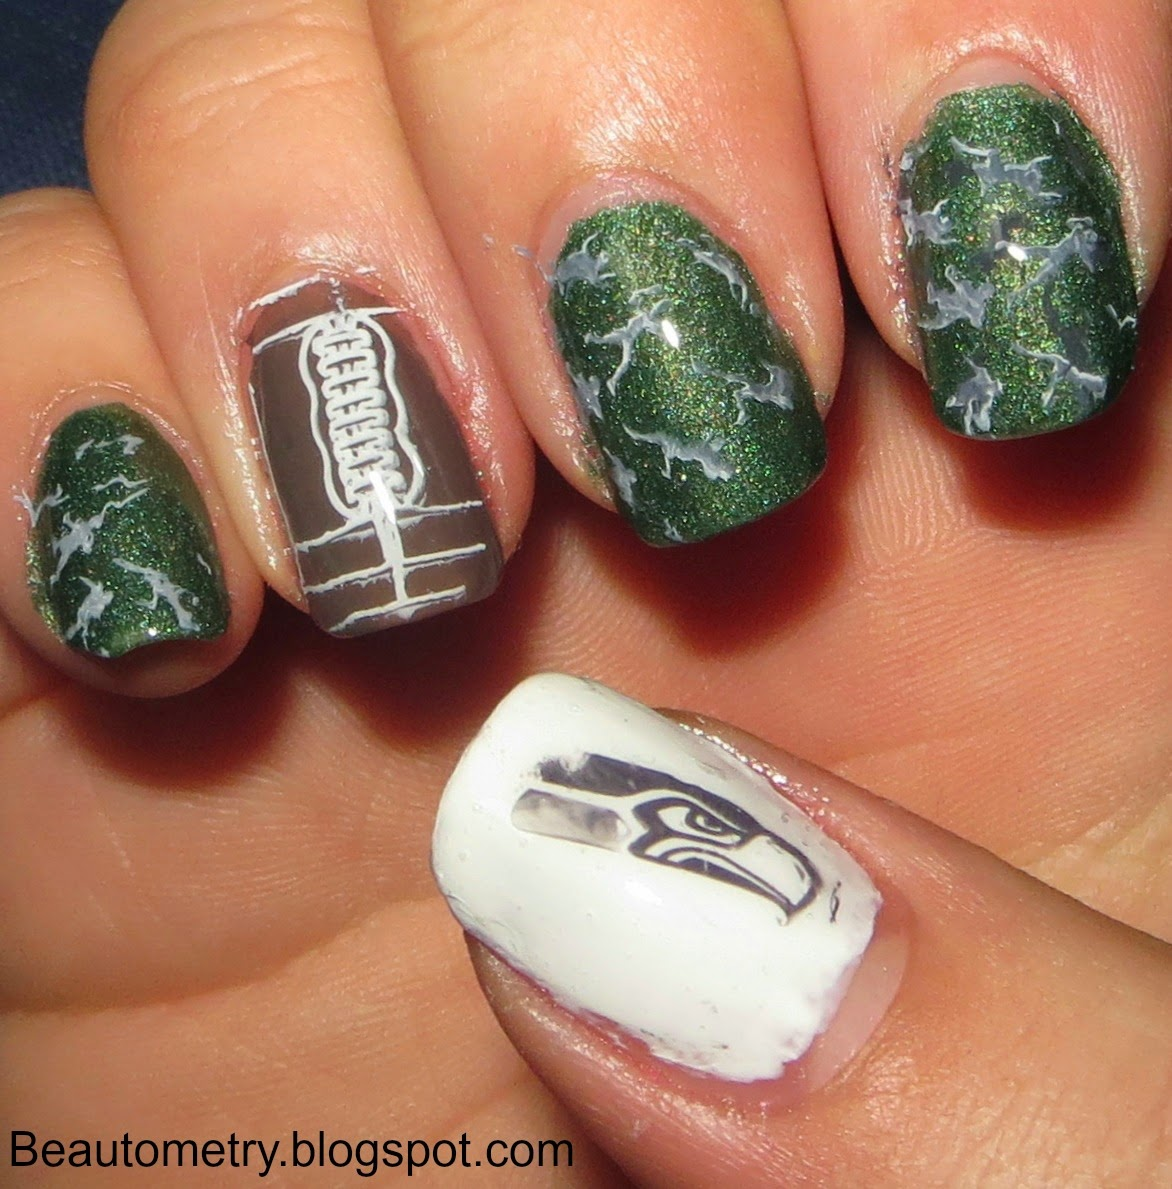 Beautometry: Superbowl 2015 with the new Petla NFL Stamping Plate